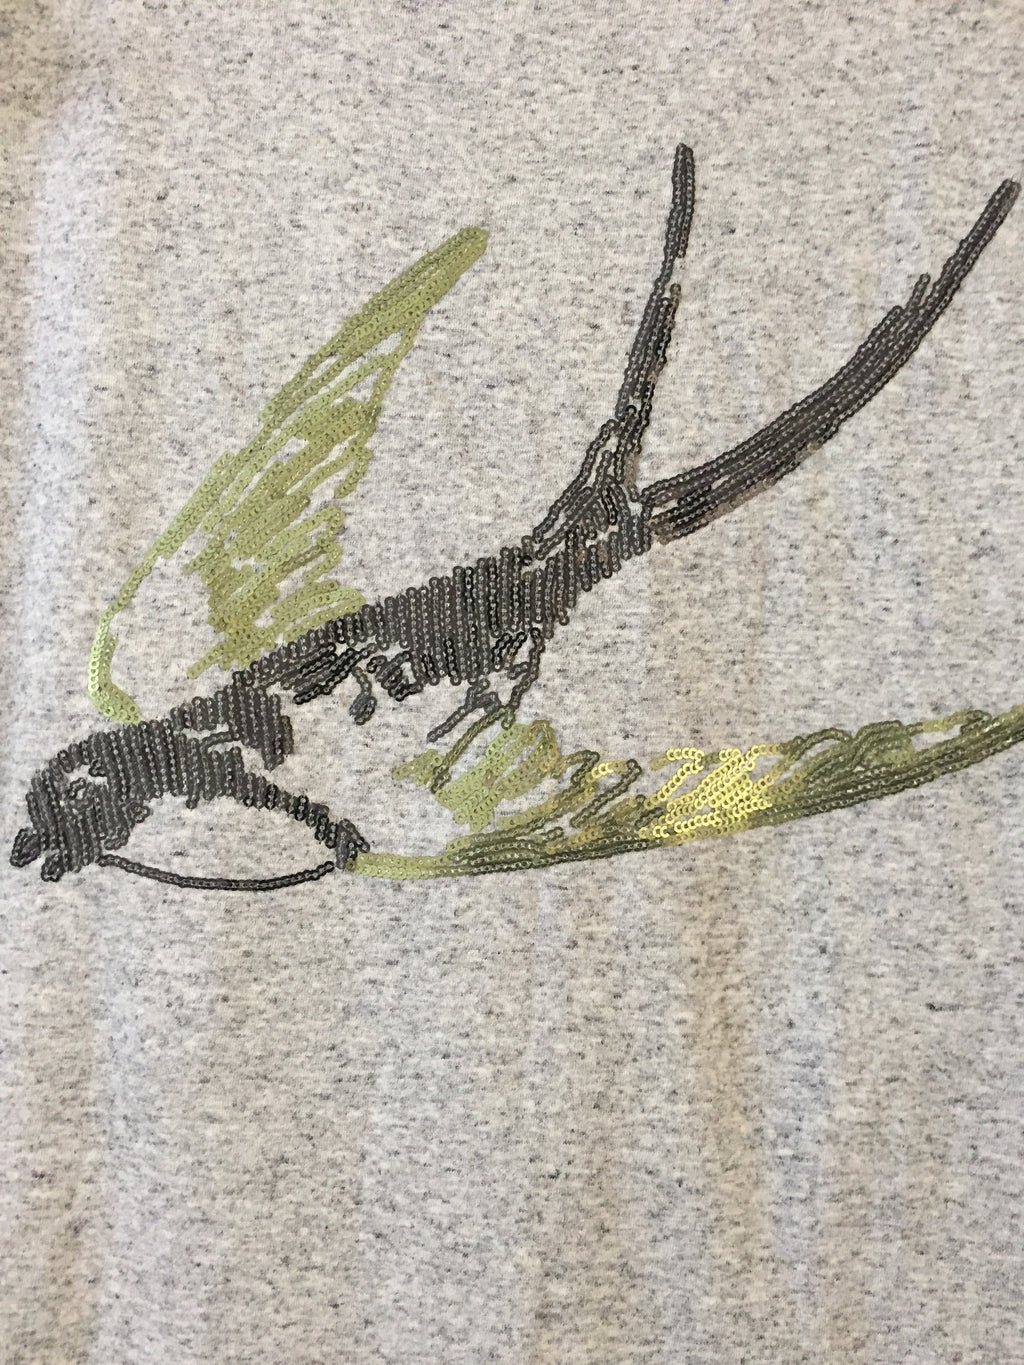 Bird - Black Spotted,Fitted, Green - Grey Sequin bird on Grey Base Tee - #FTFY - For The Fun Years